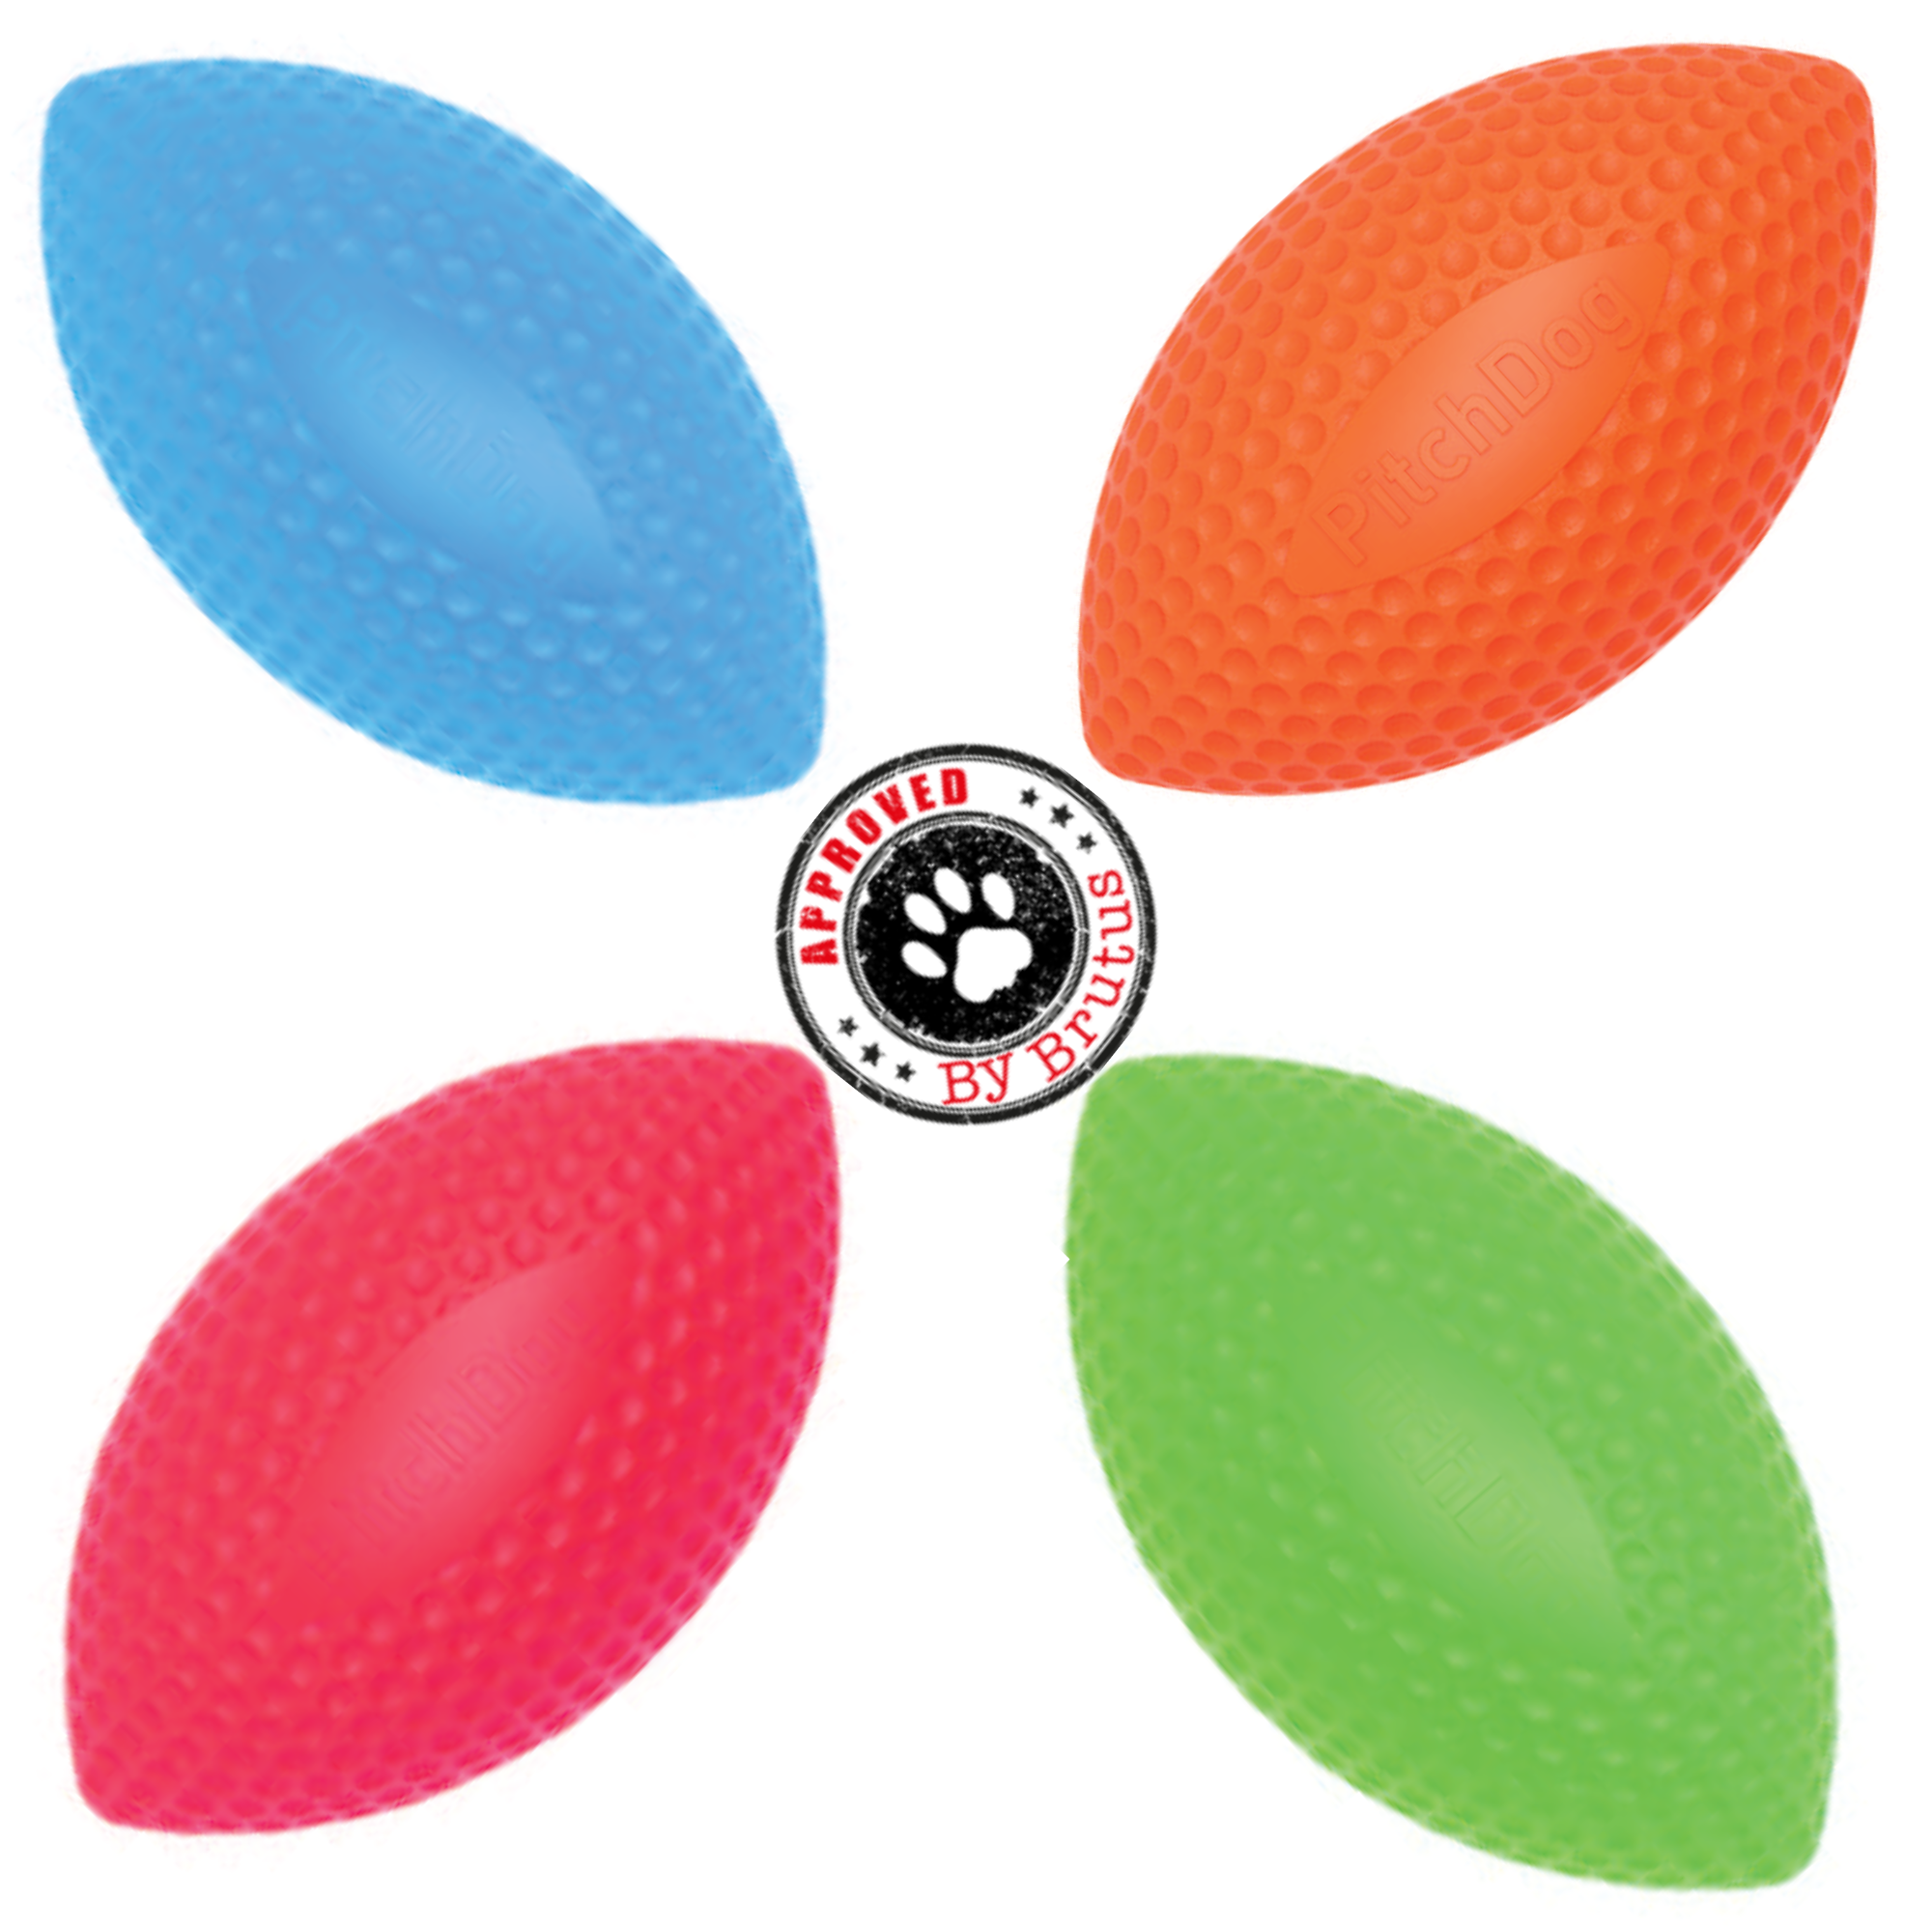 Dog and puppy toys, tough, brightly coloured, floating toys, eco friendly toys, below RRP, tested and approved by Brutus